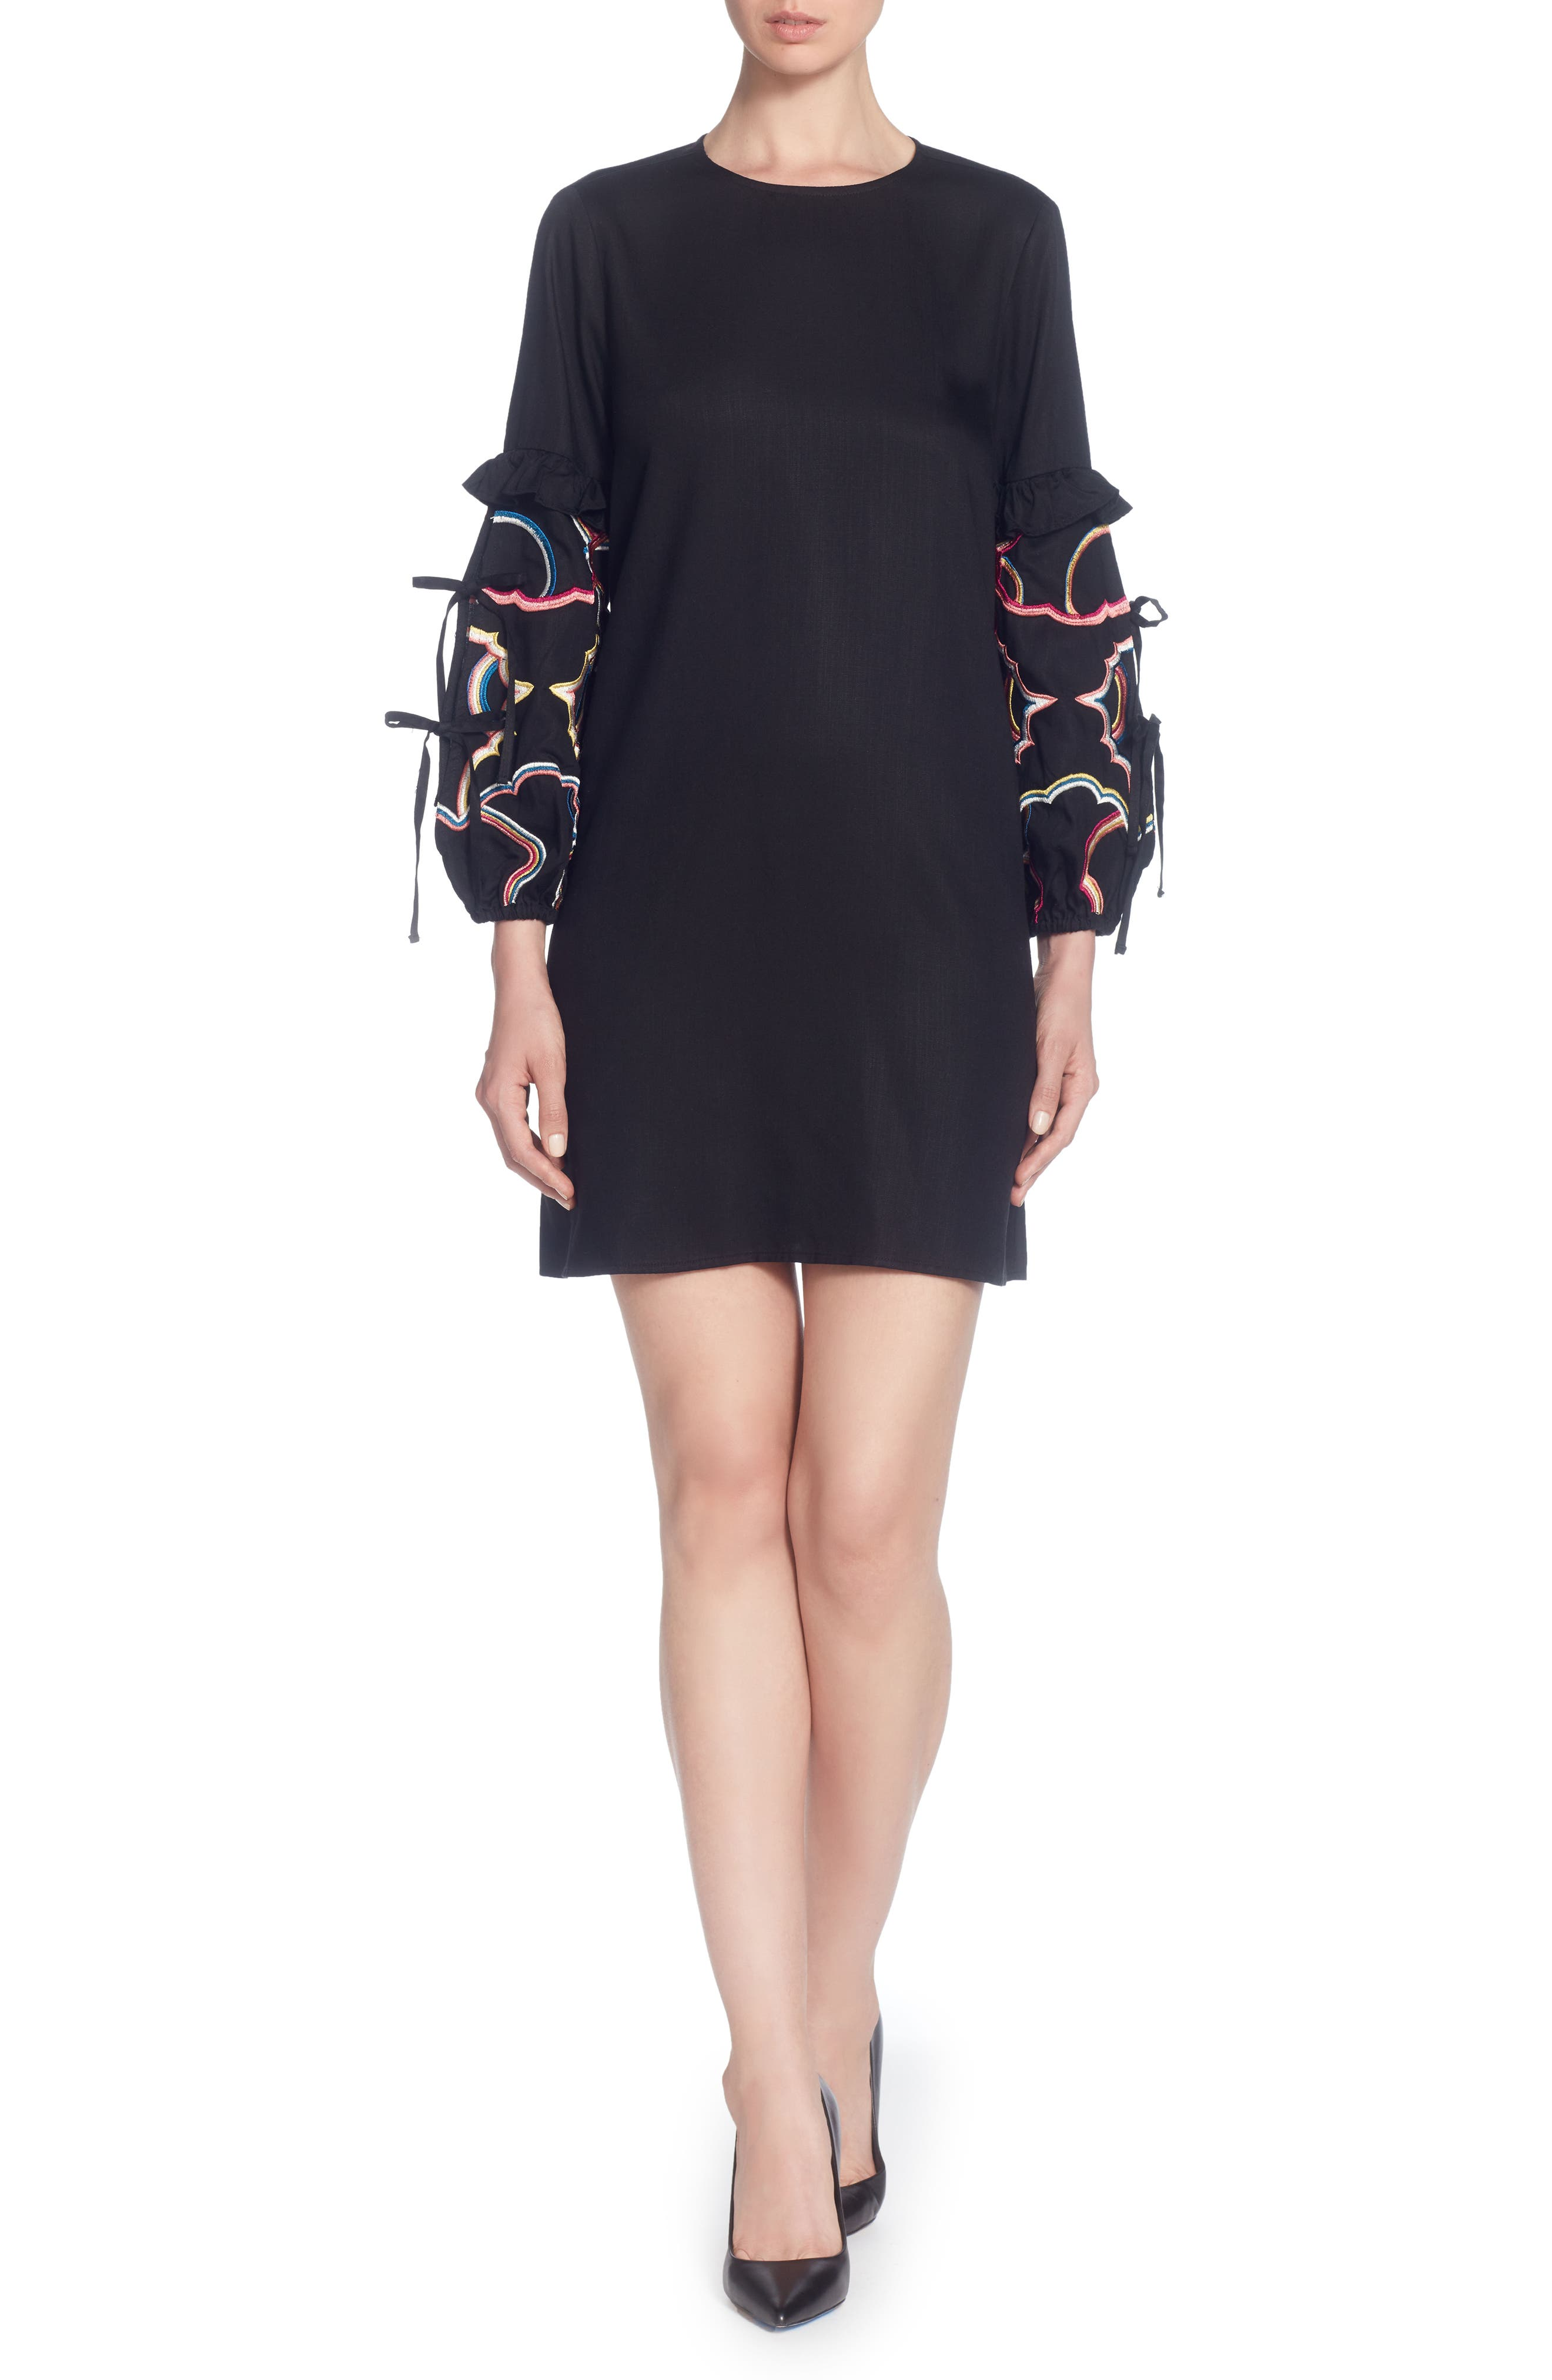 Dahl Embroidered Sleeve Dress,                             Main thumbnail 1, color,                             001